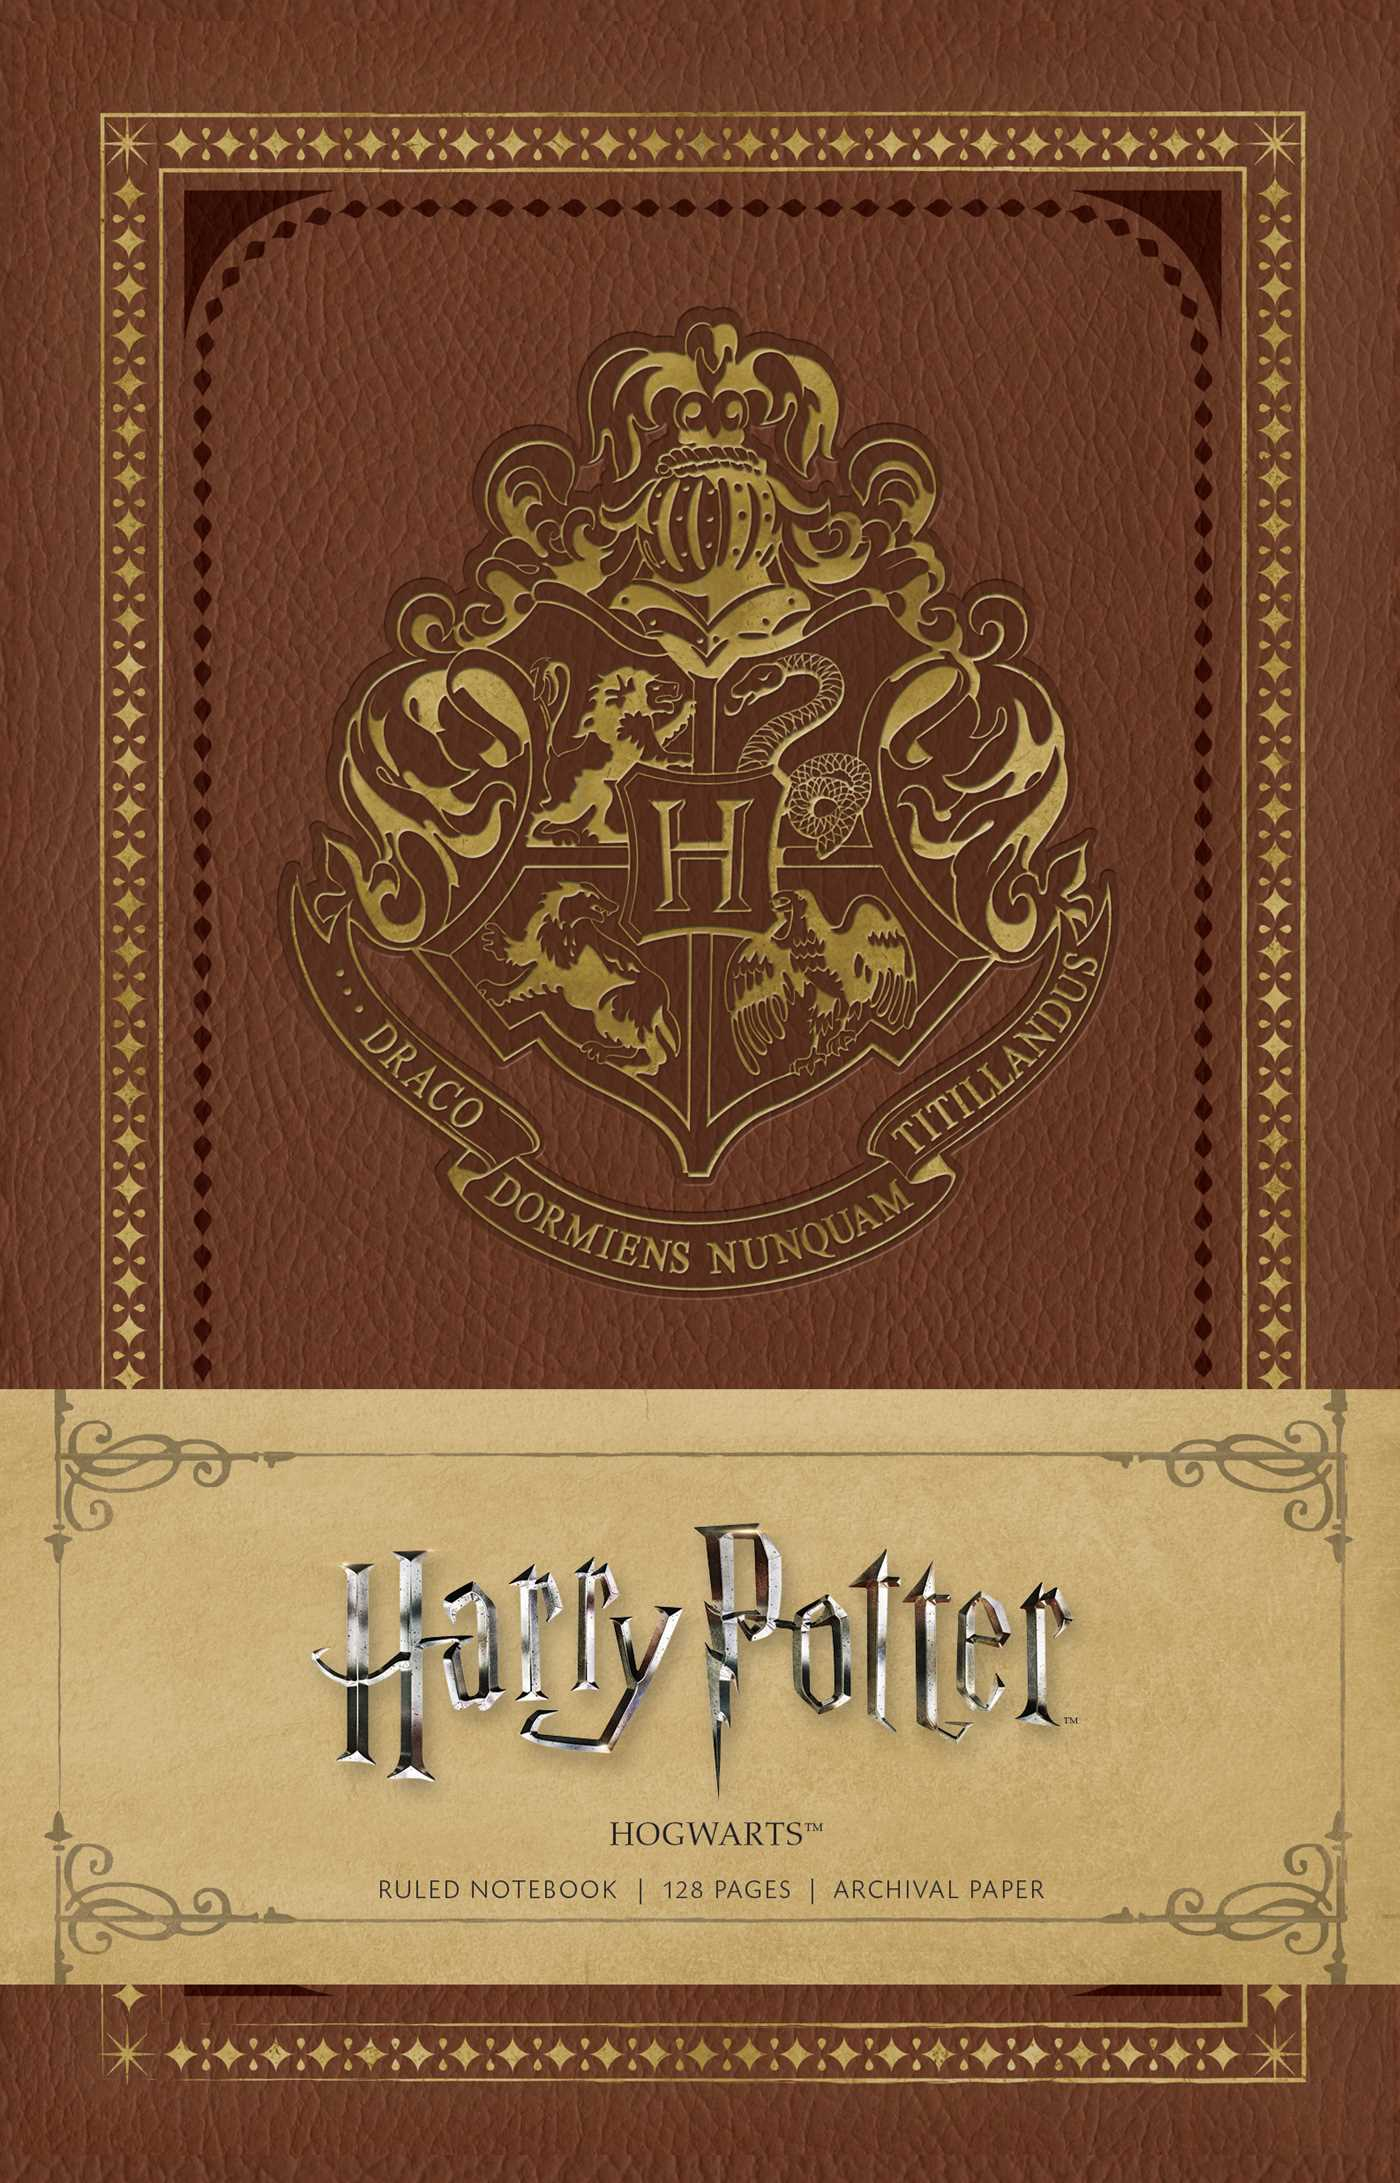 Harry Potter School Book Cover ~ Harry potter hogwarts ruled notebook book by insight editions